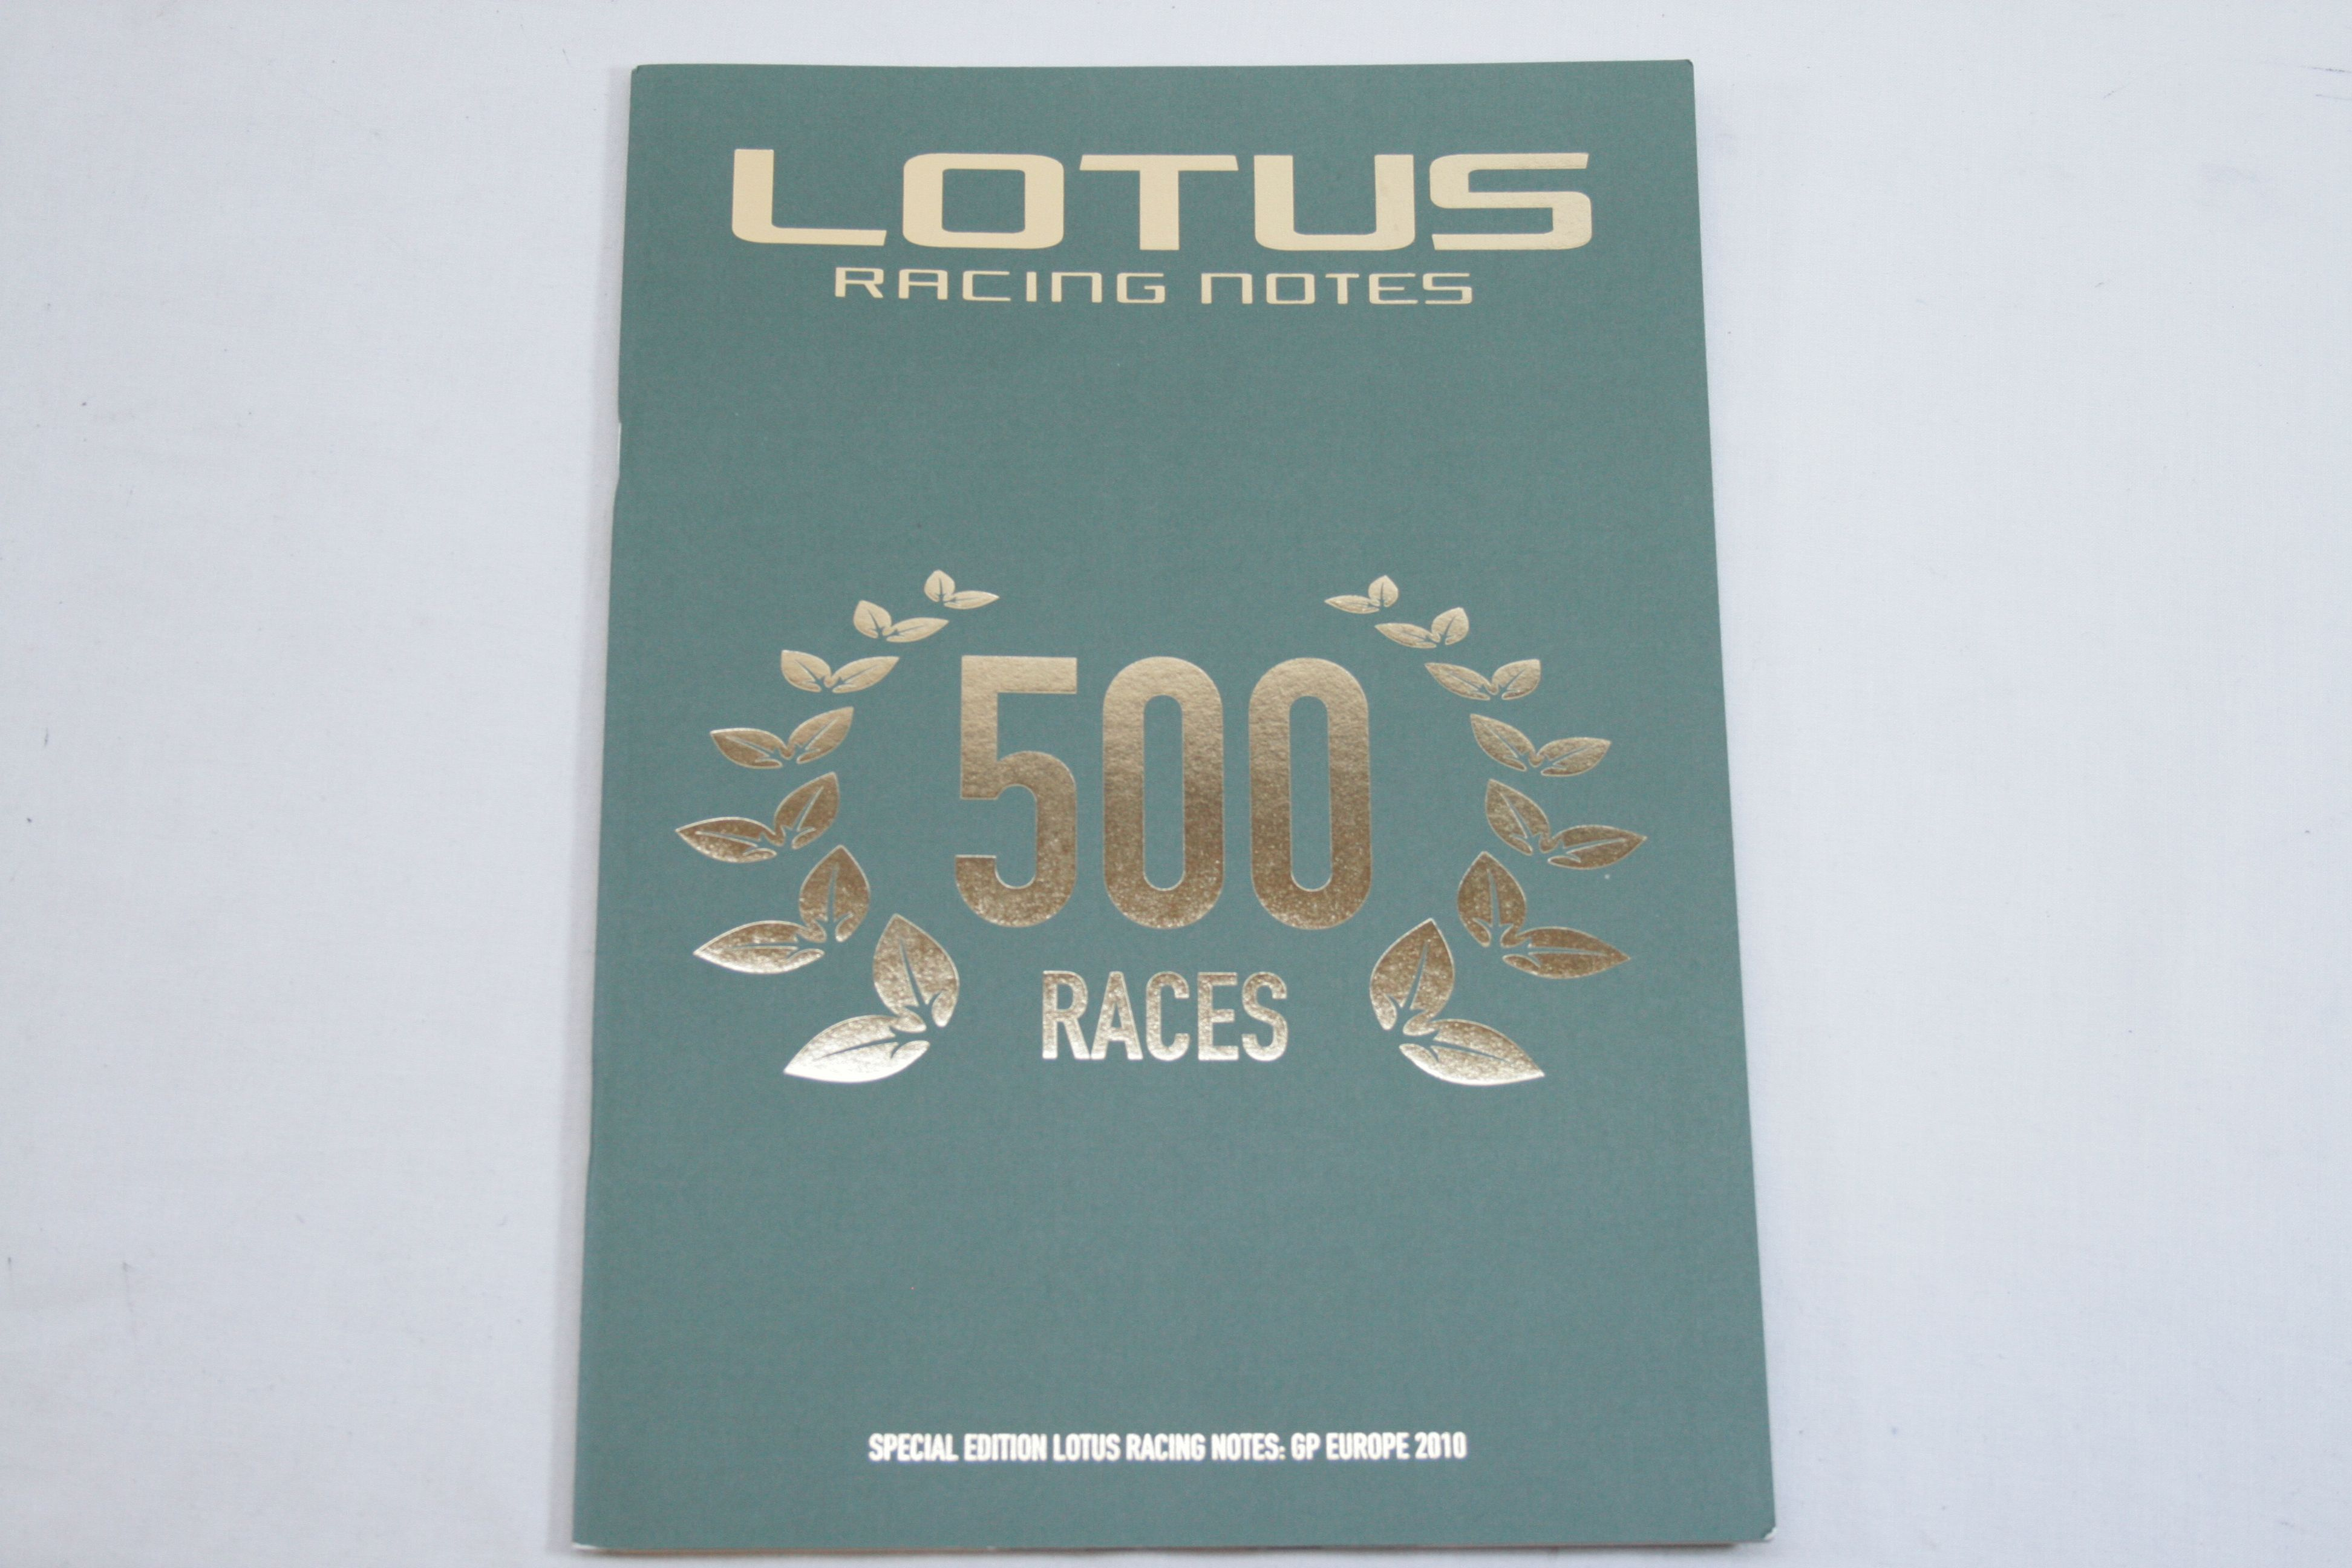 Lotus Racing Notes - 500 Races - Special Edition Lotus Racing Notes: GP Europe 2